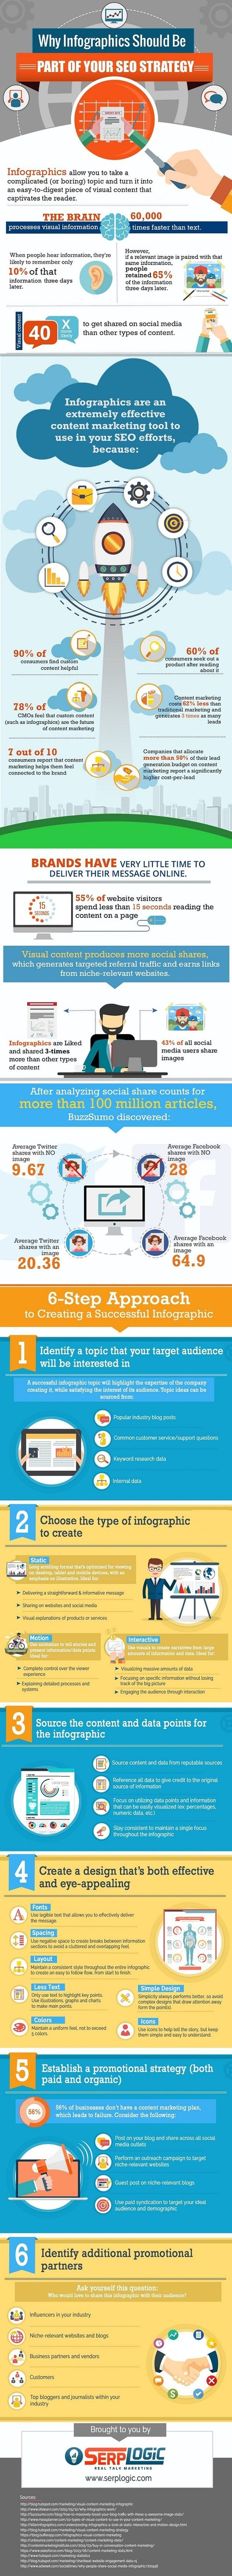 Six Steps to Creating a Successful Infographic for Your Business [Infographic] | Digital Brand Marketing | Scoop.it